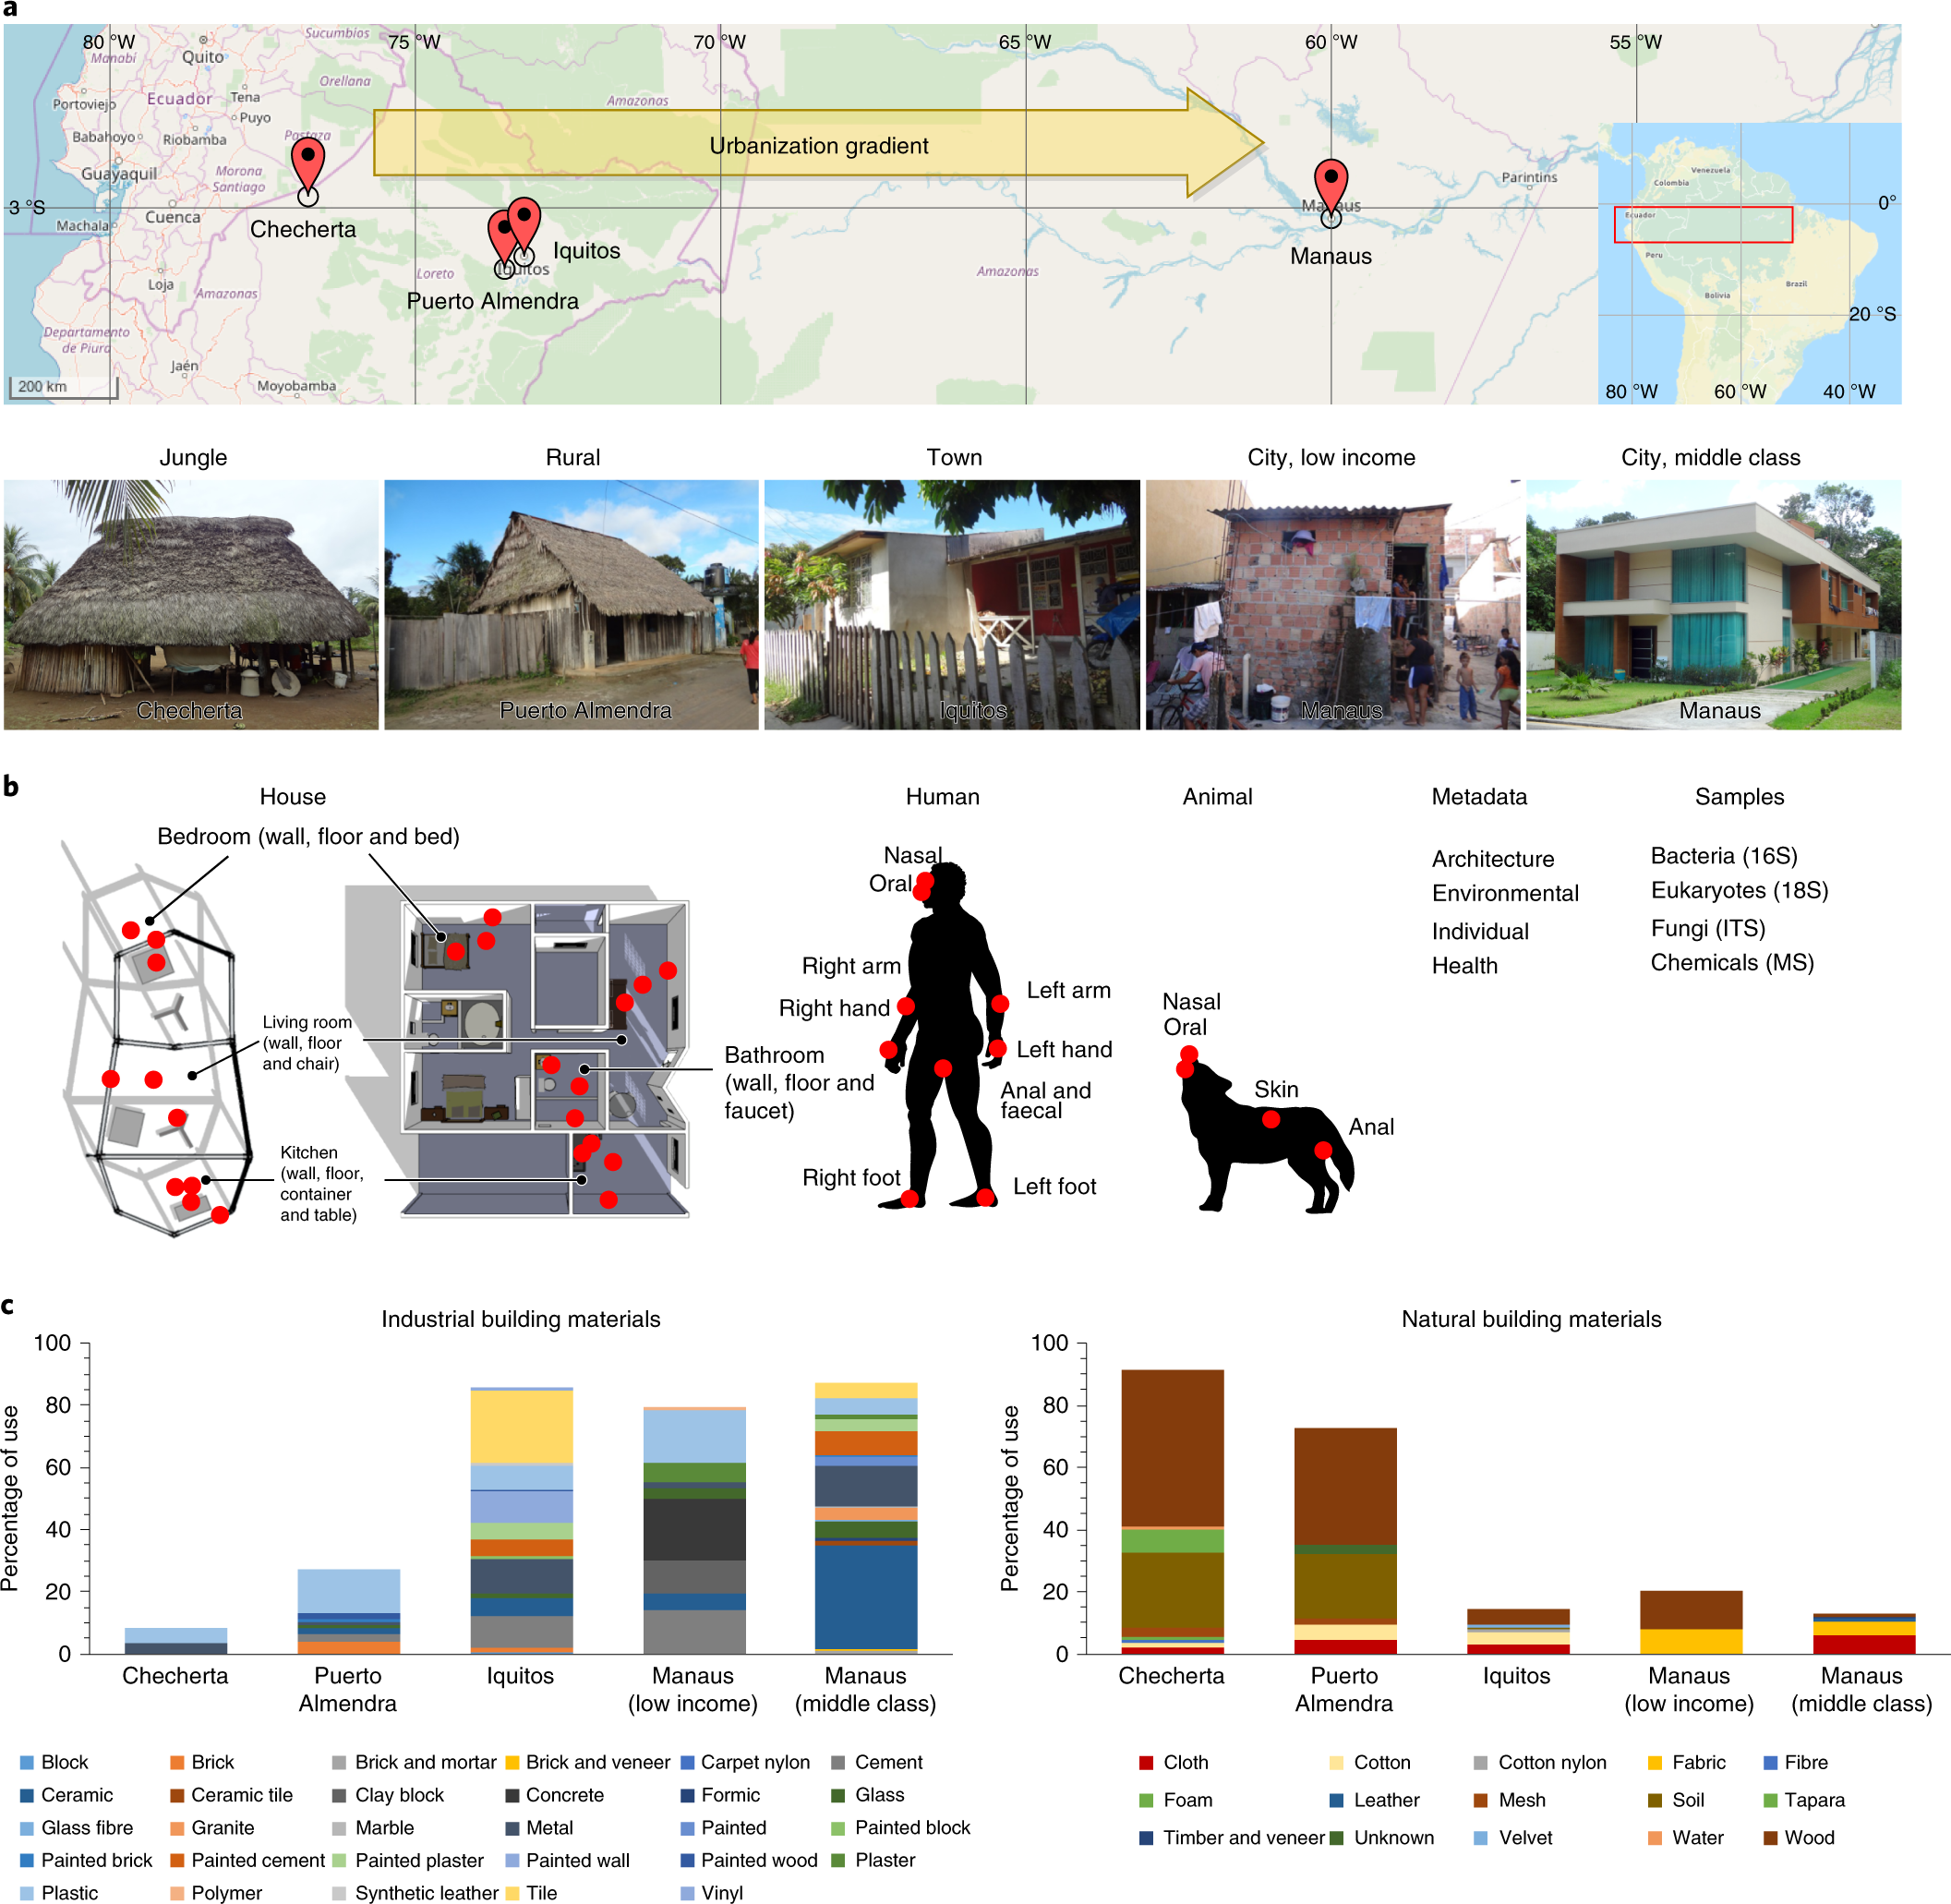 Home chemical and microbial transitions across urbanization